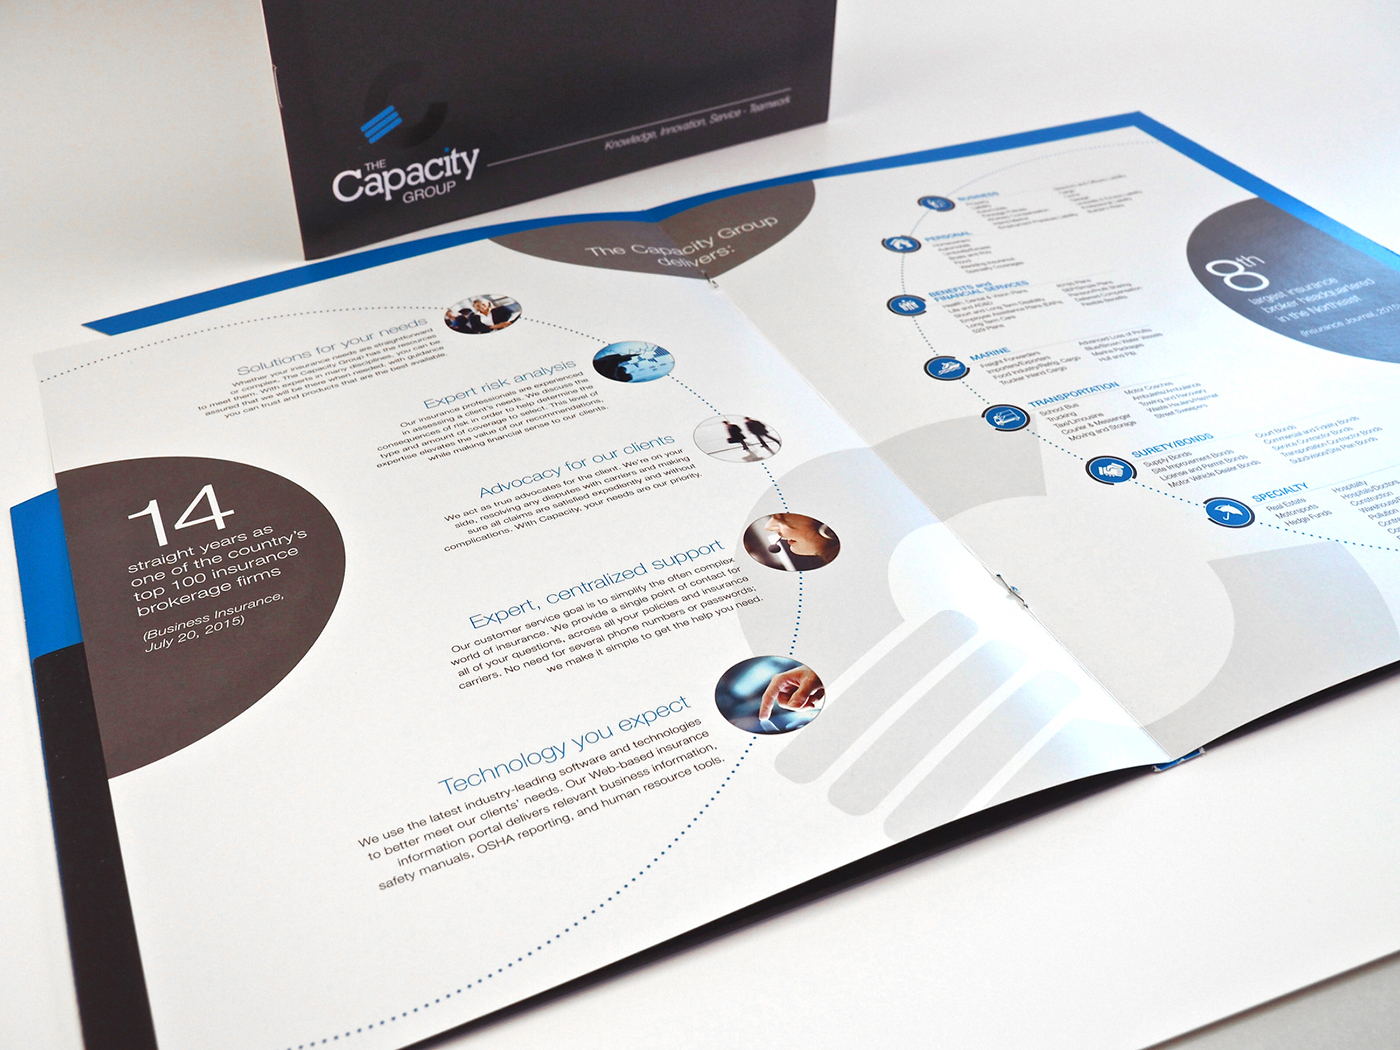 Professional brochure, branding, and marketing design